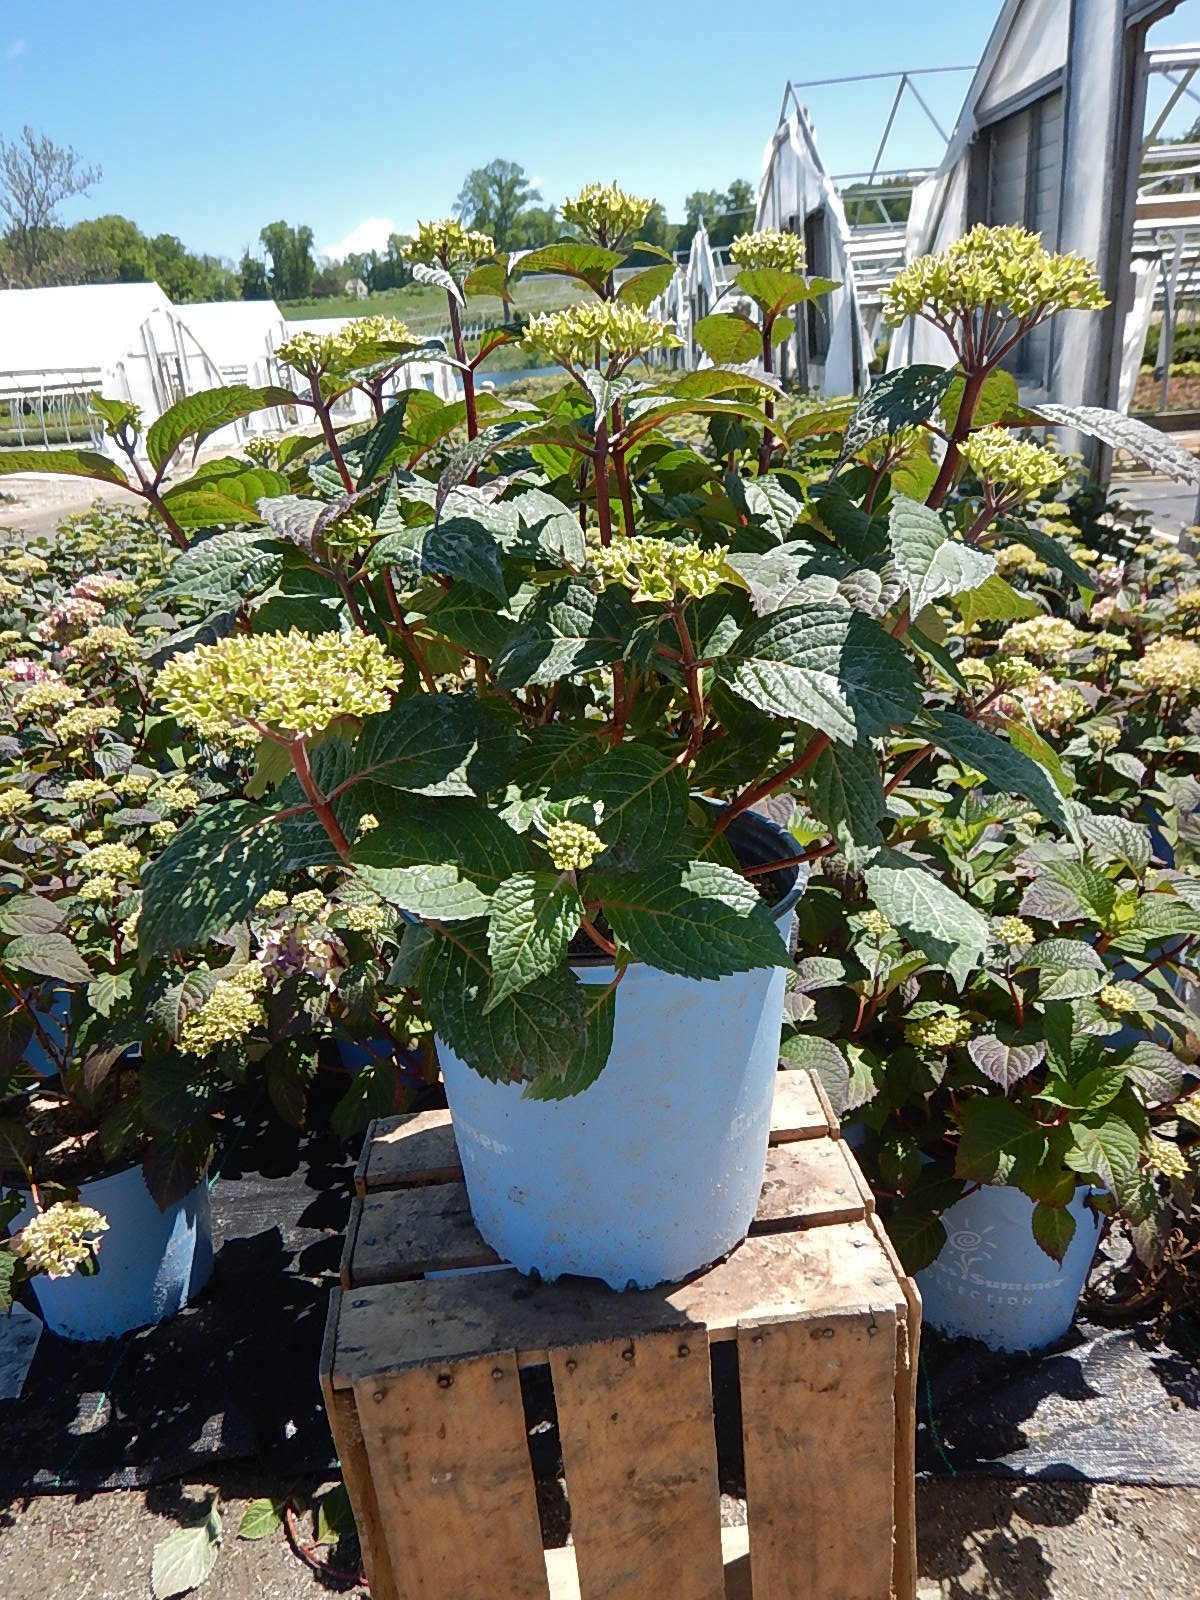 Endless Summer Collection - Hydrangea mac. Endless Summer BloomStruck (Reblooming Hydrangea) Shrub, RB purple, #3 - Size Container by Green Promise Farms (Image #2)